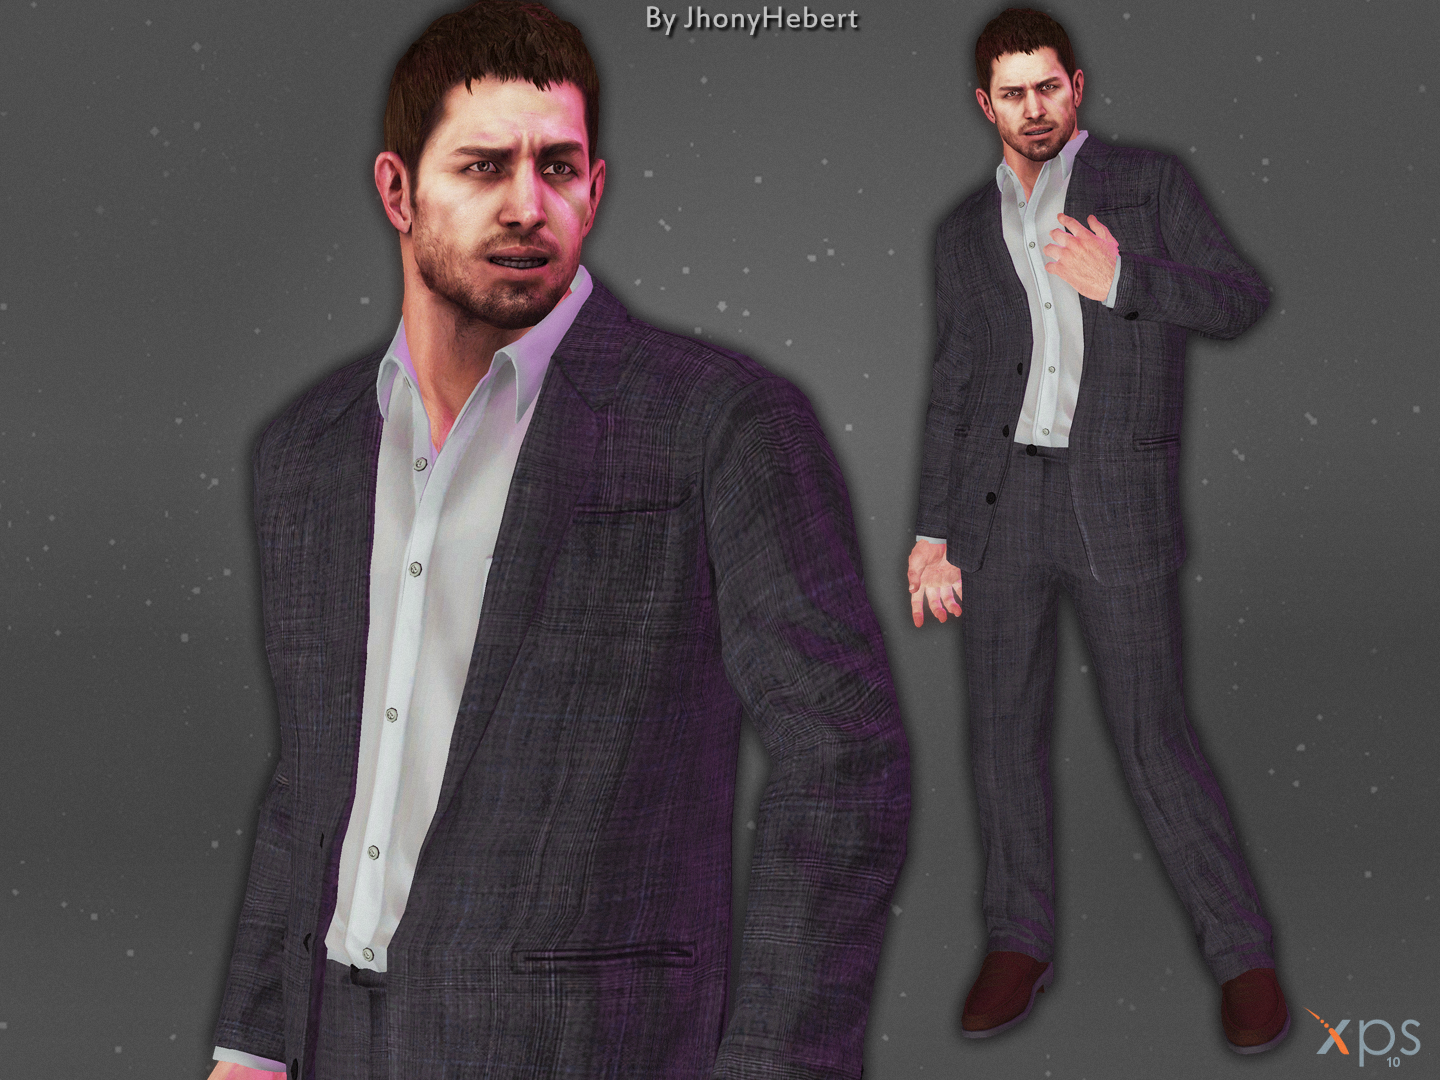 Chris Redfield - Suit by JhonyHebert